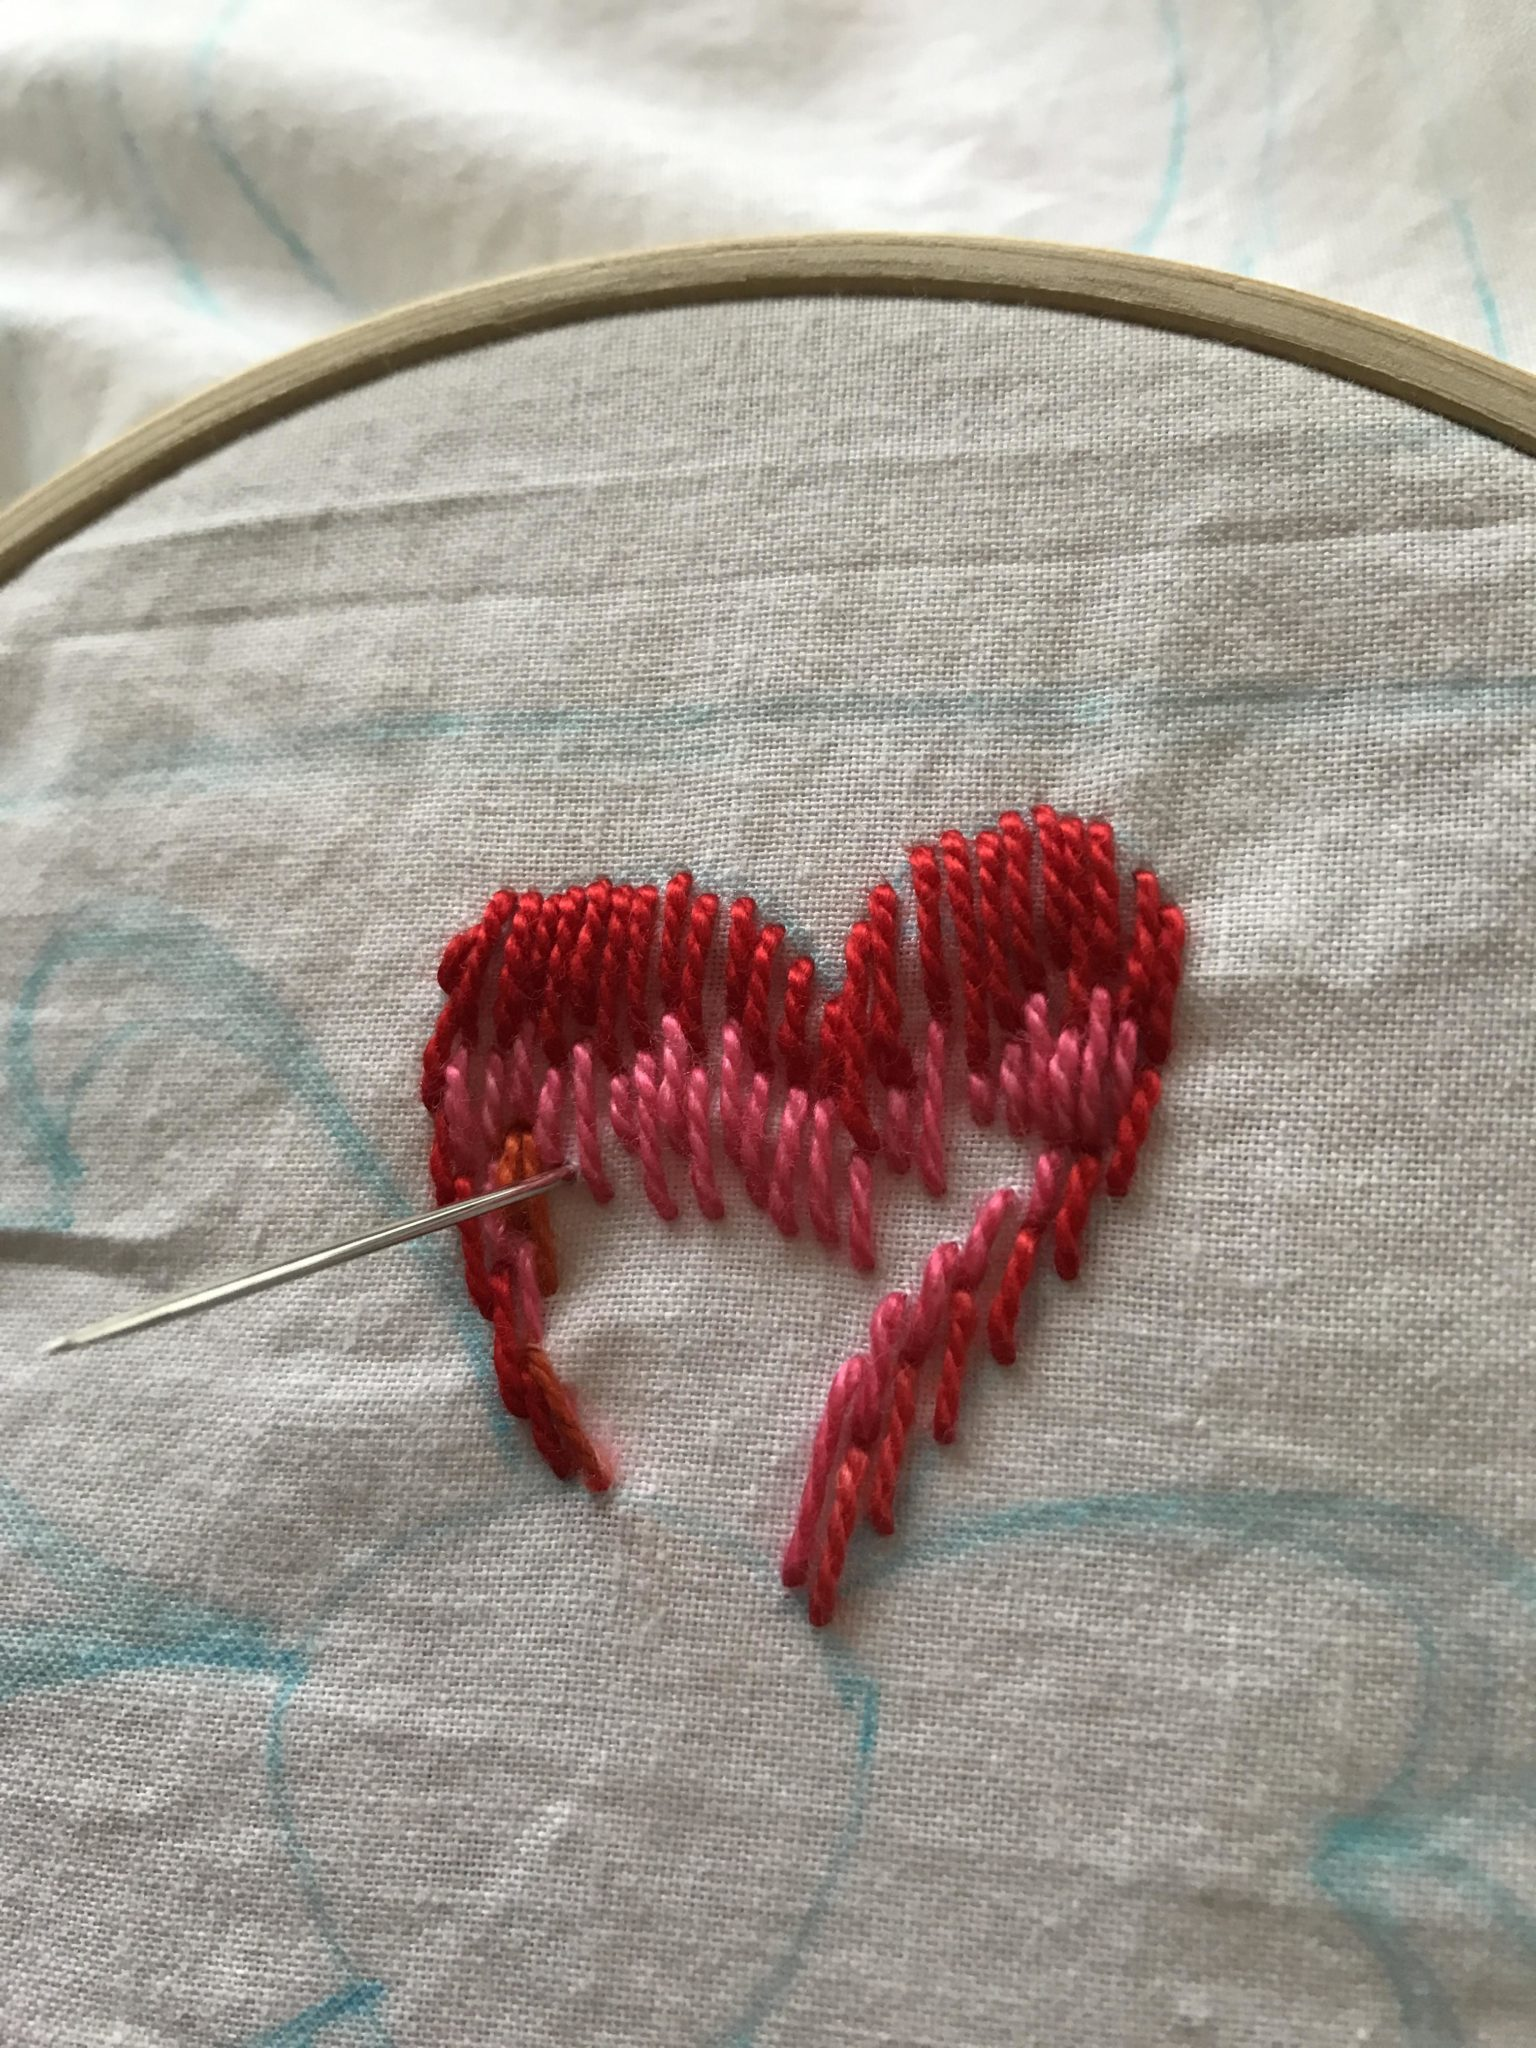 Embroidery: Long and Short Stitch